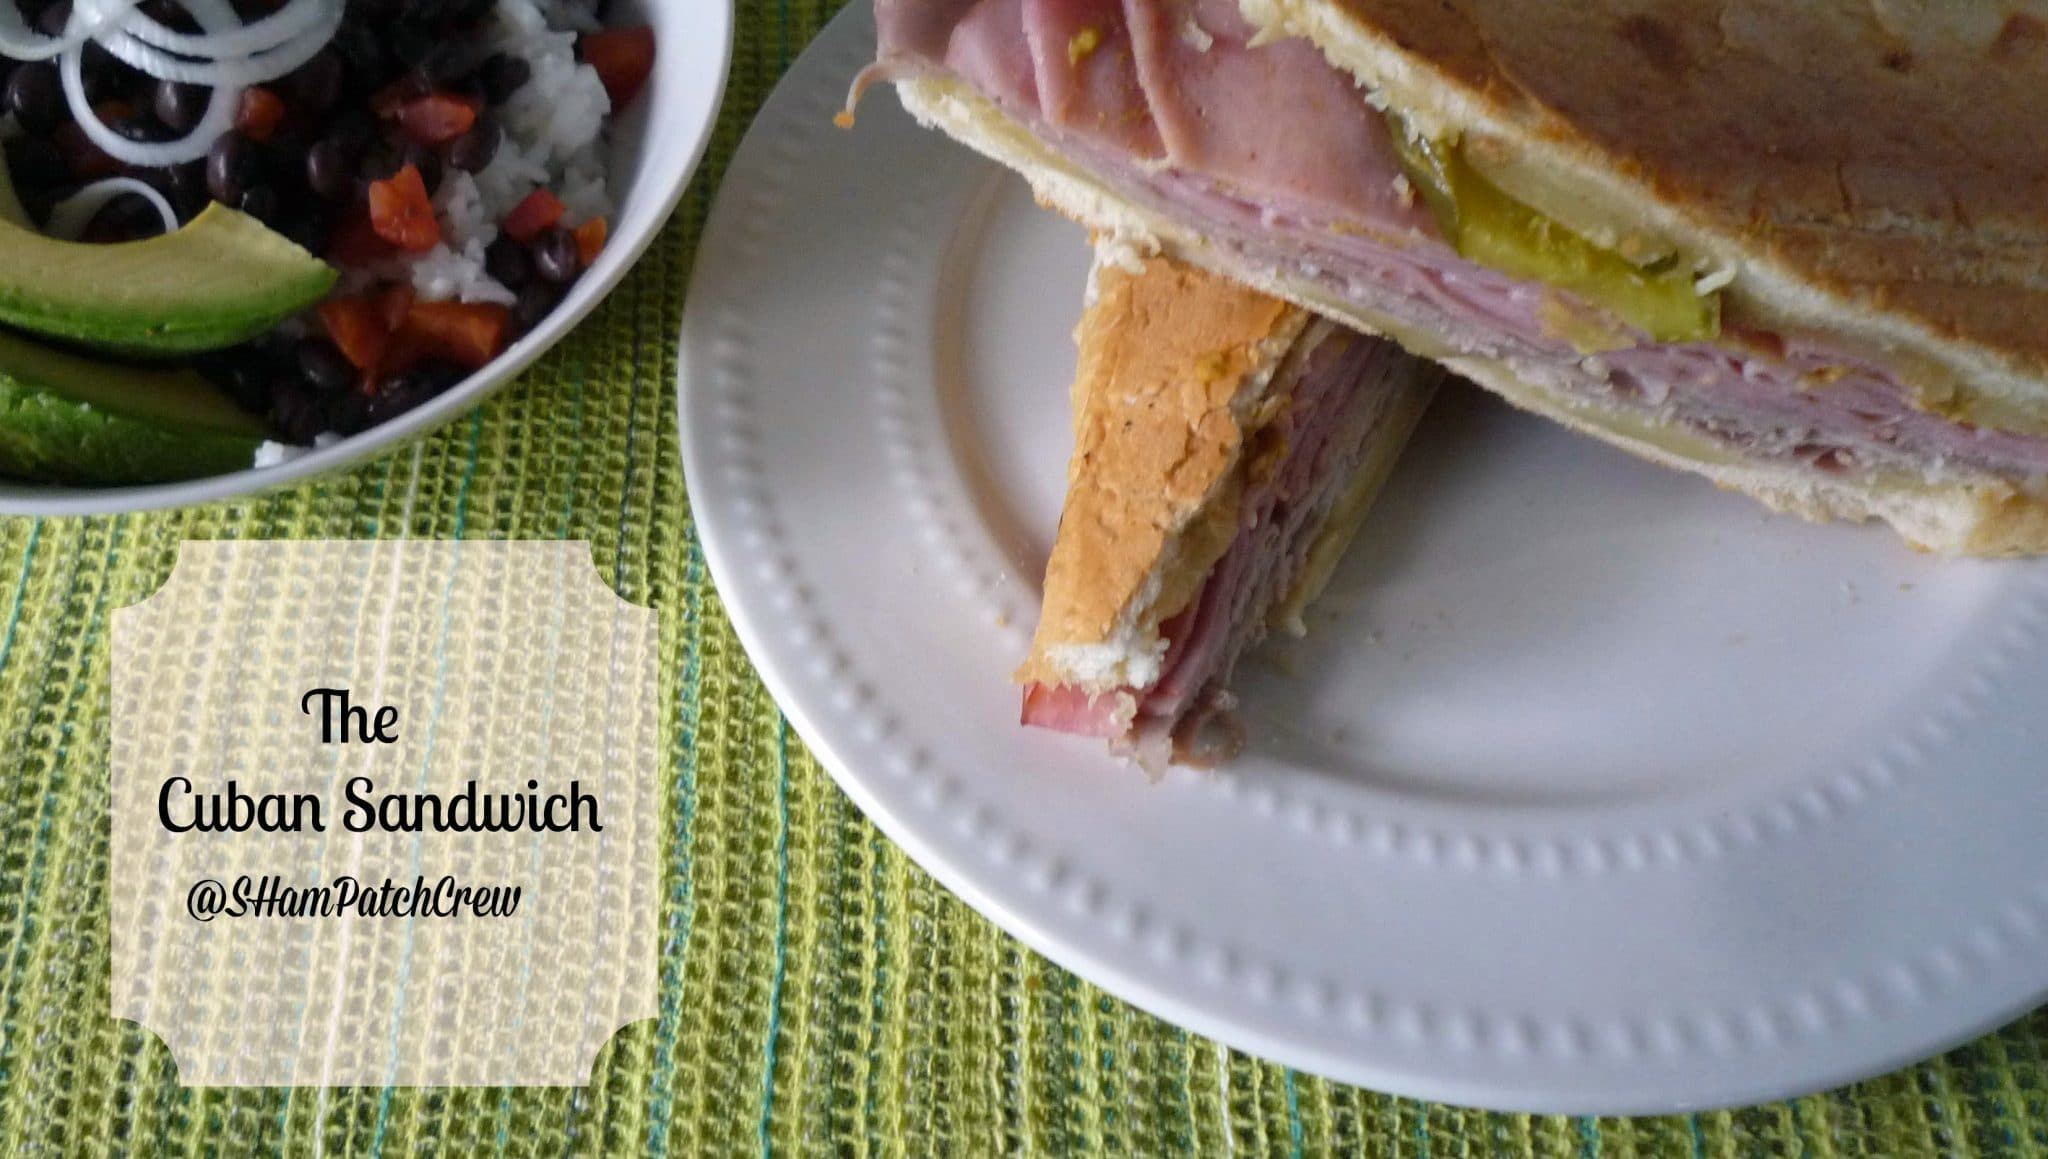 #Cuban Sandwich, Cuban Pressed Sandwich, #Mixito